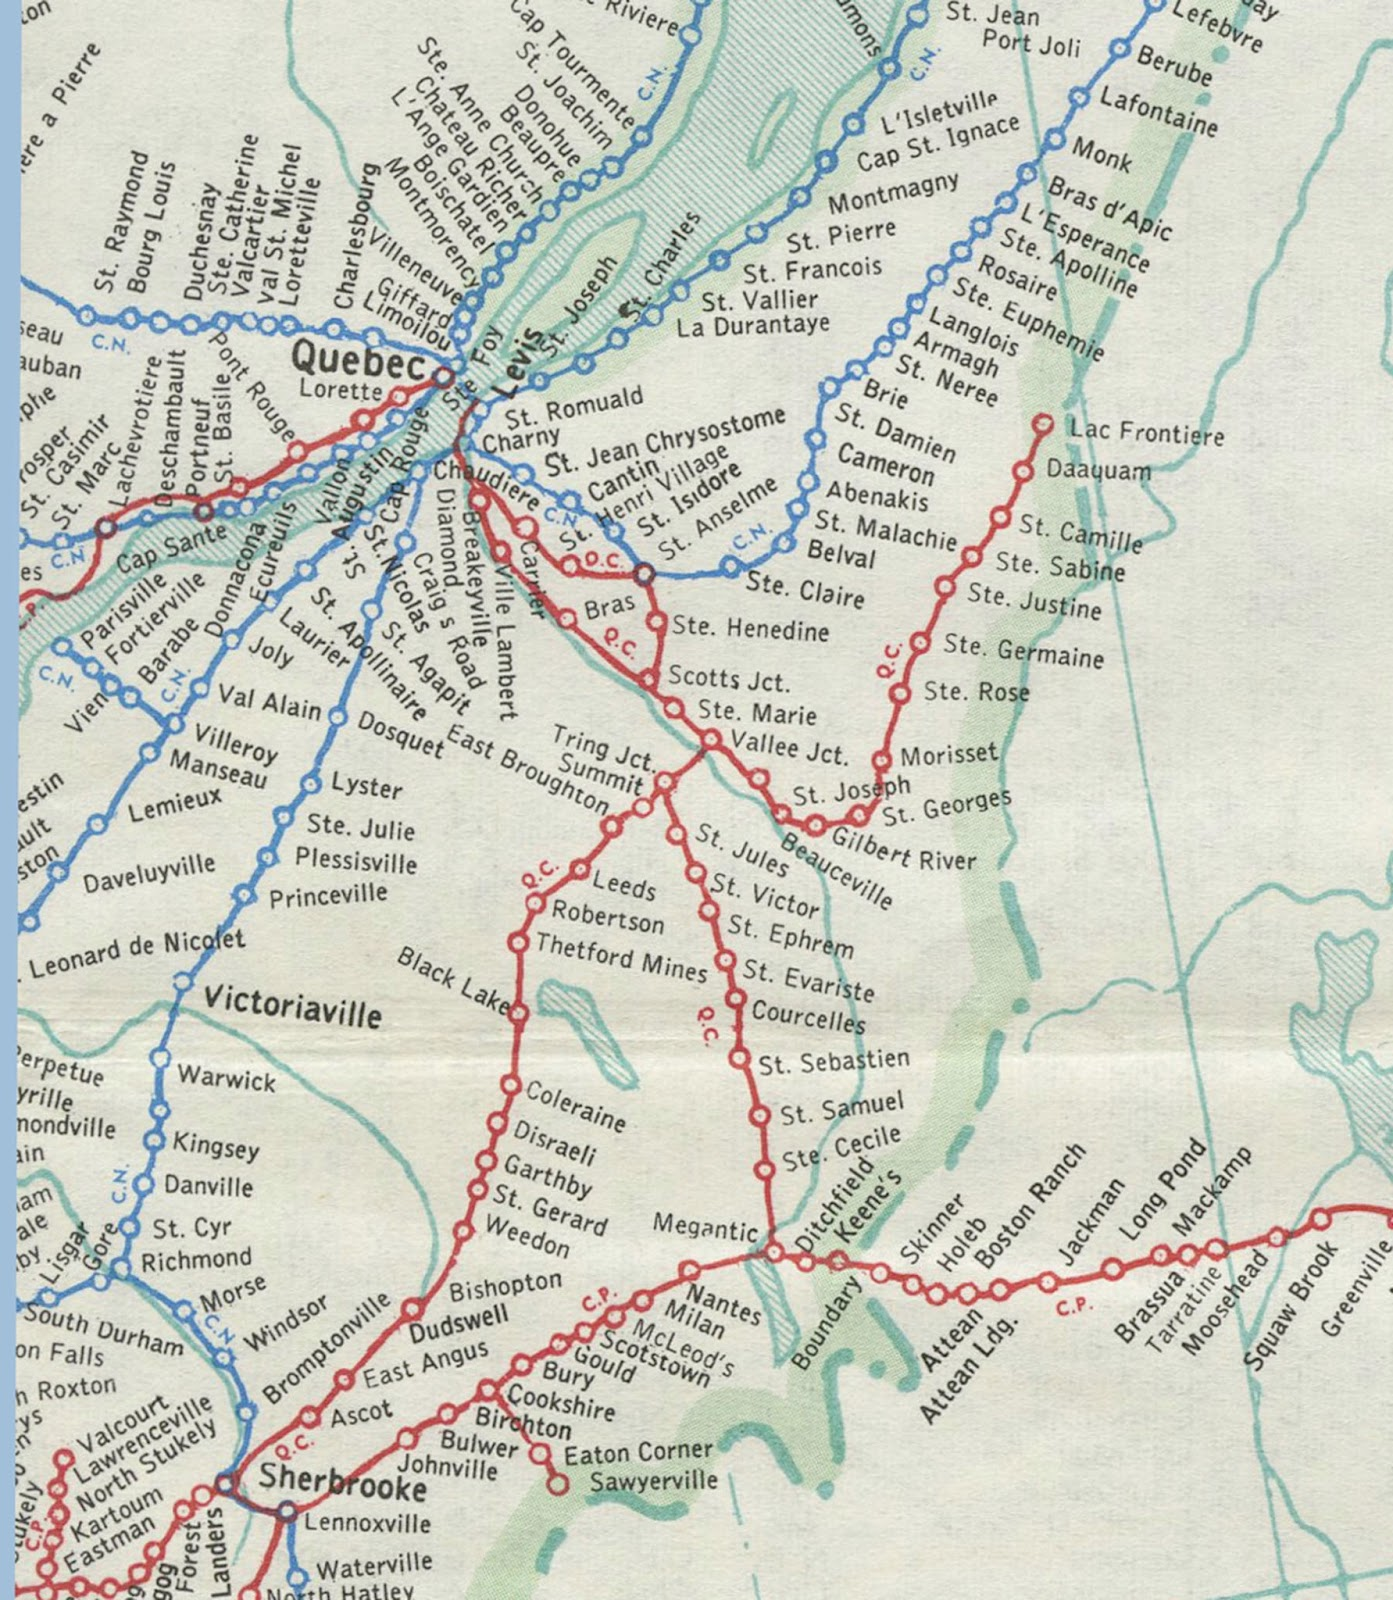 railway map of canada gis research and map collection ball state university libraries